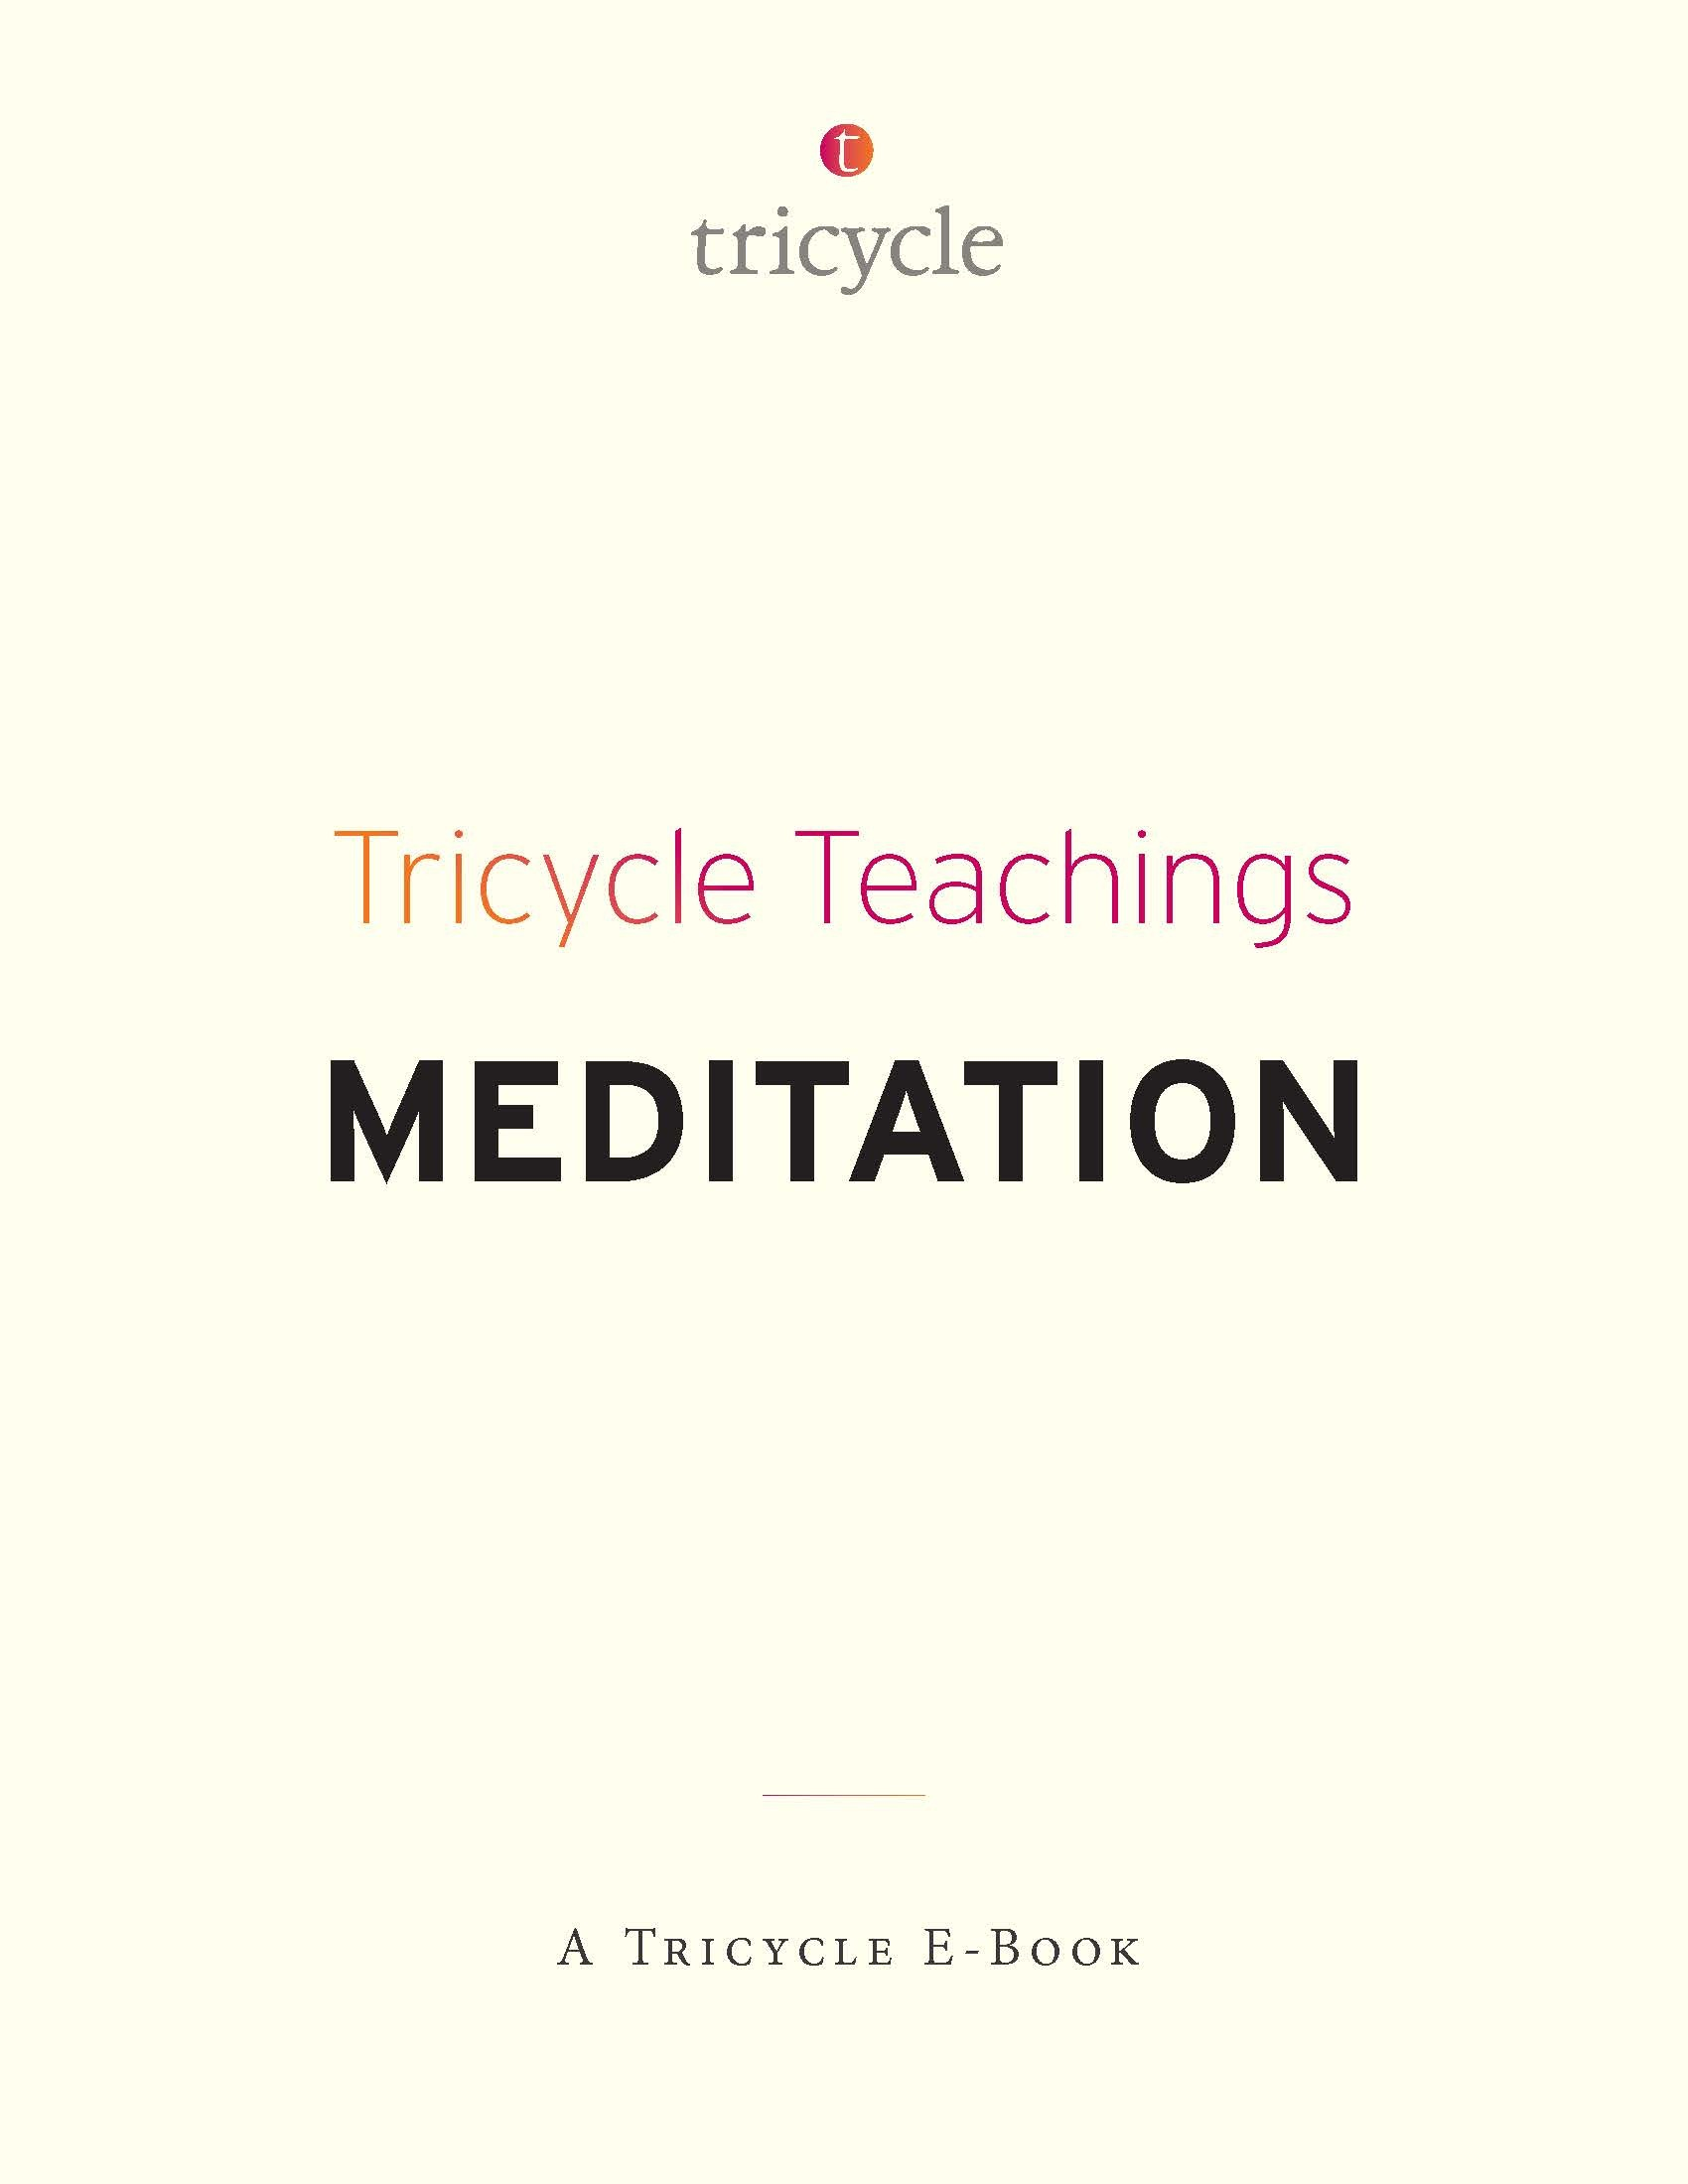 Meditation (Tricycle Teachings #3) The Tricycle Foundation